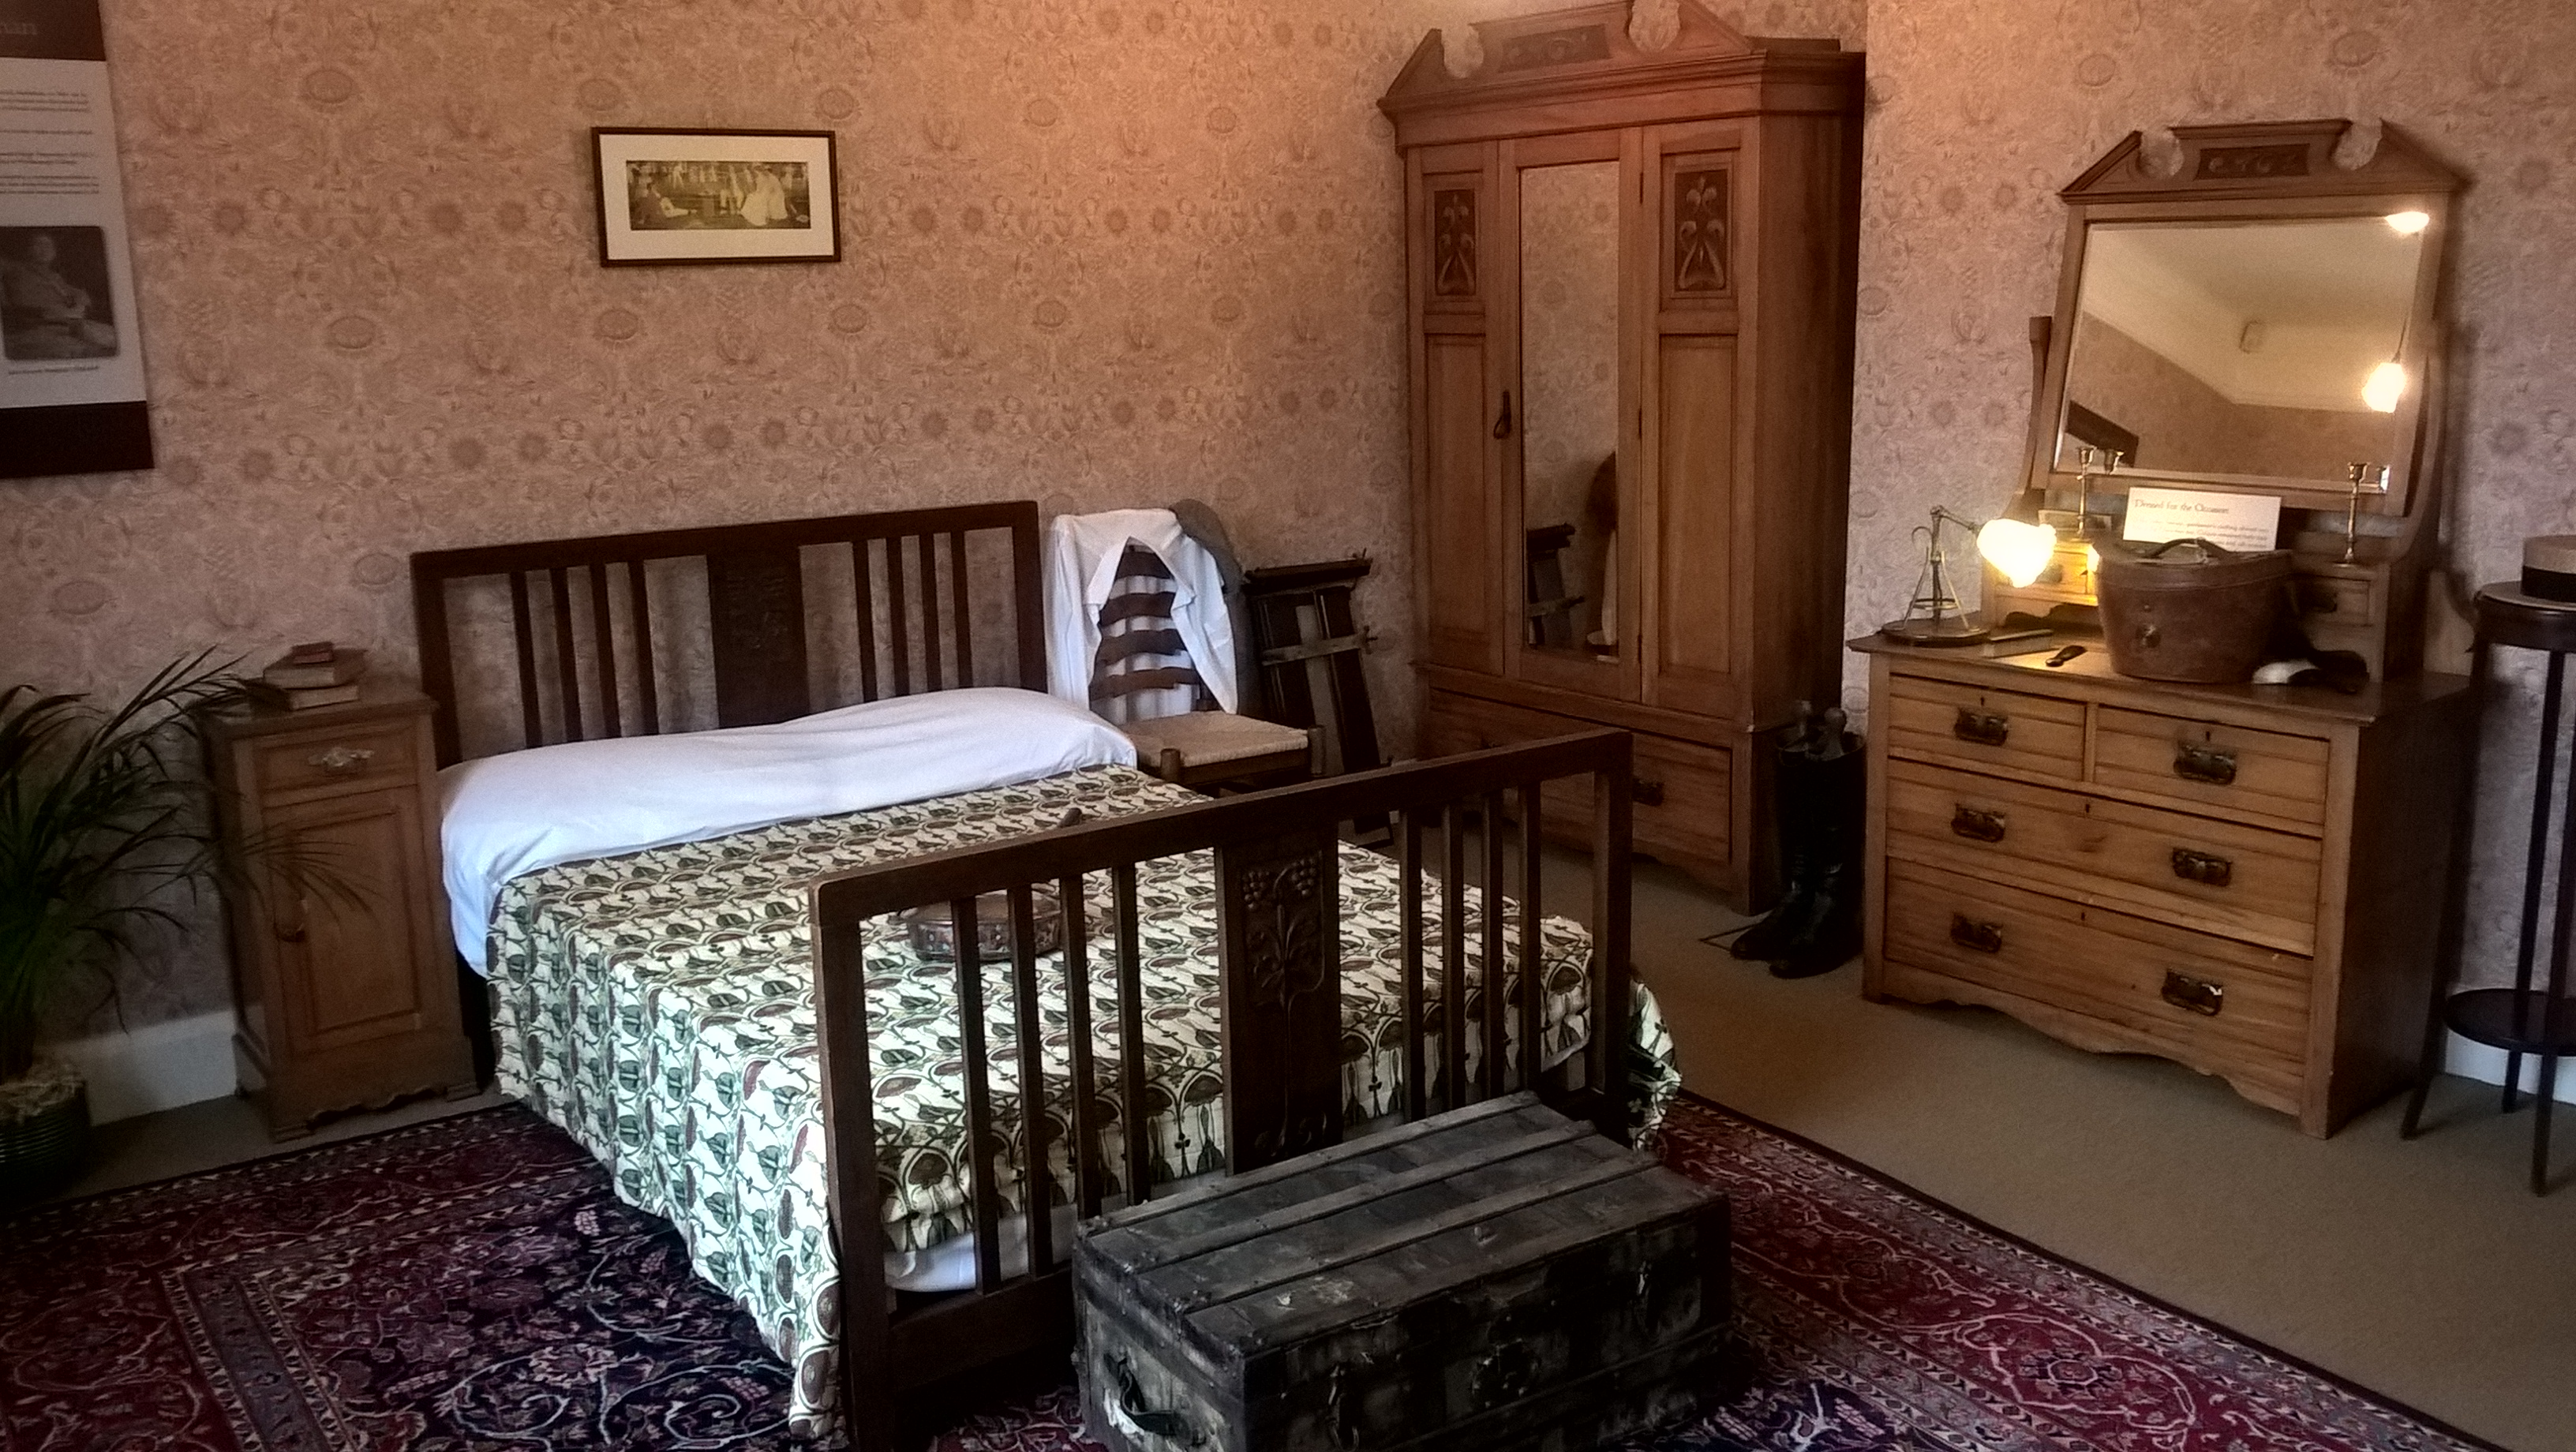 English: Interior of Winterbourne House. Main bedroom. Double bed, chest of drawers with mirror, wardrobe and bedside table. Date 2 March 2016, 10:08:47